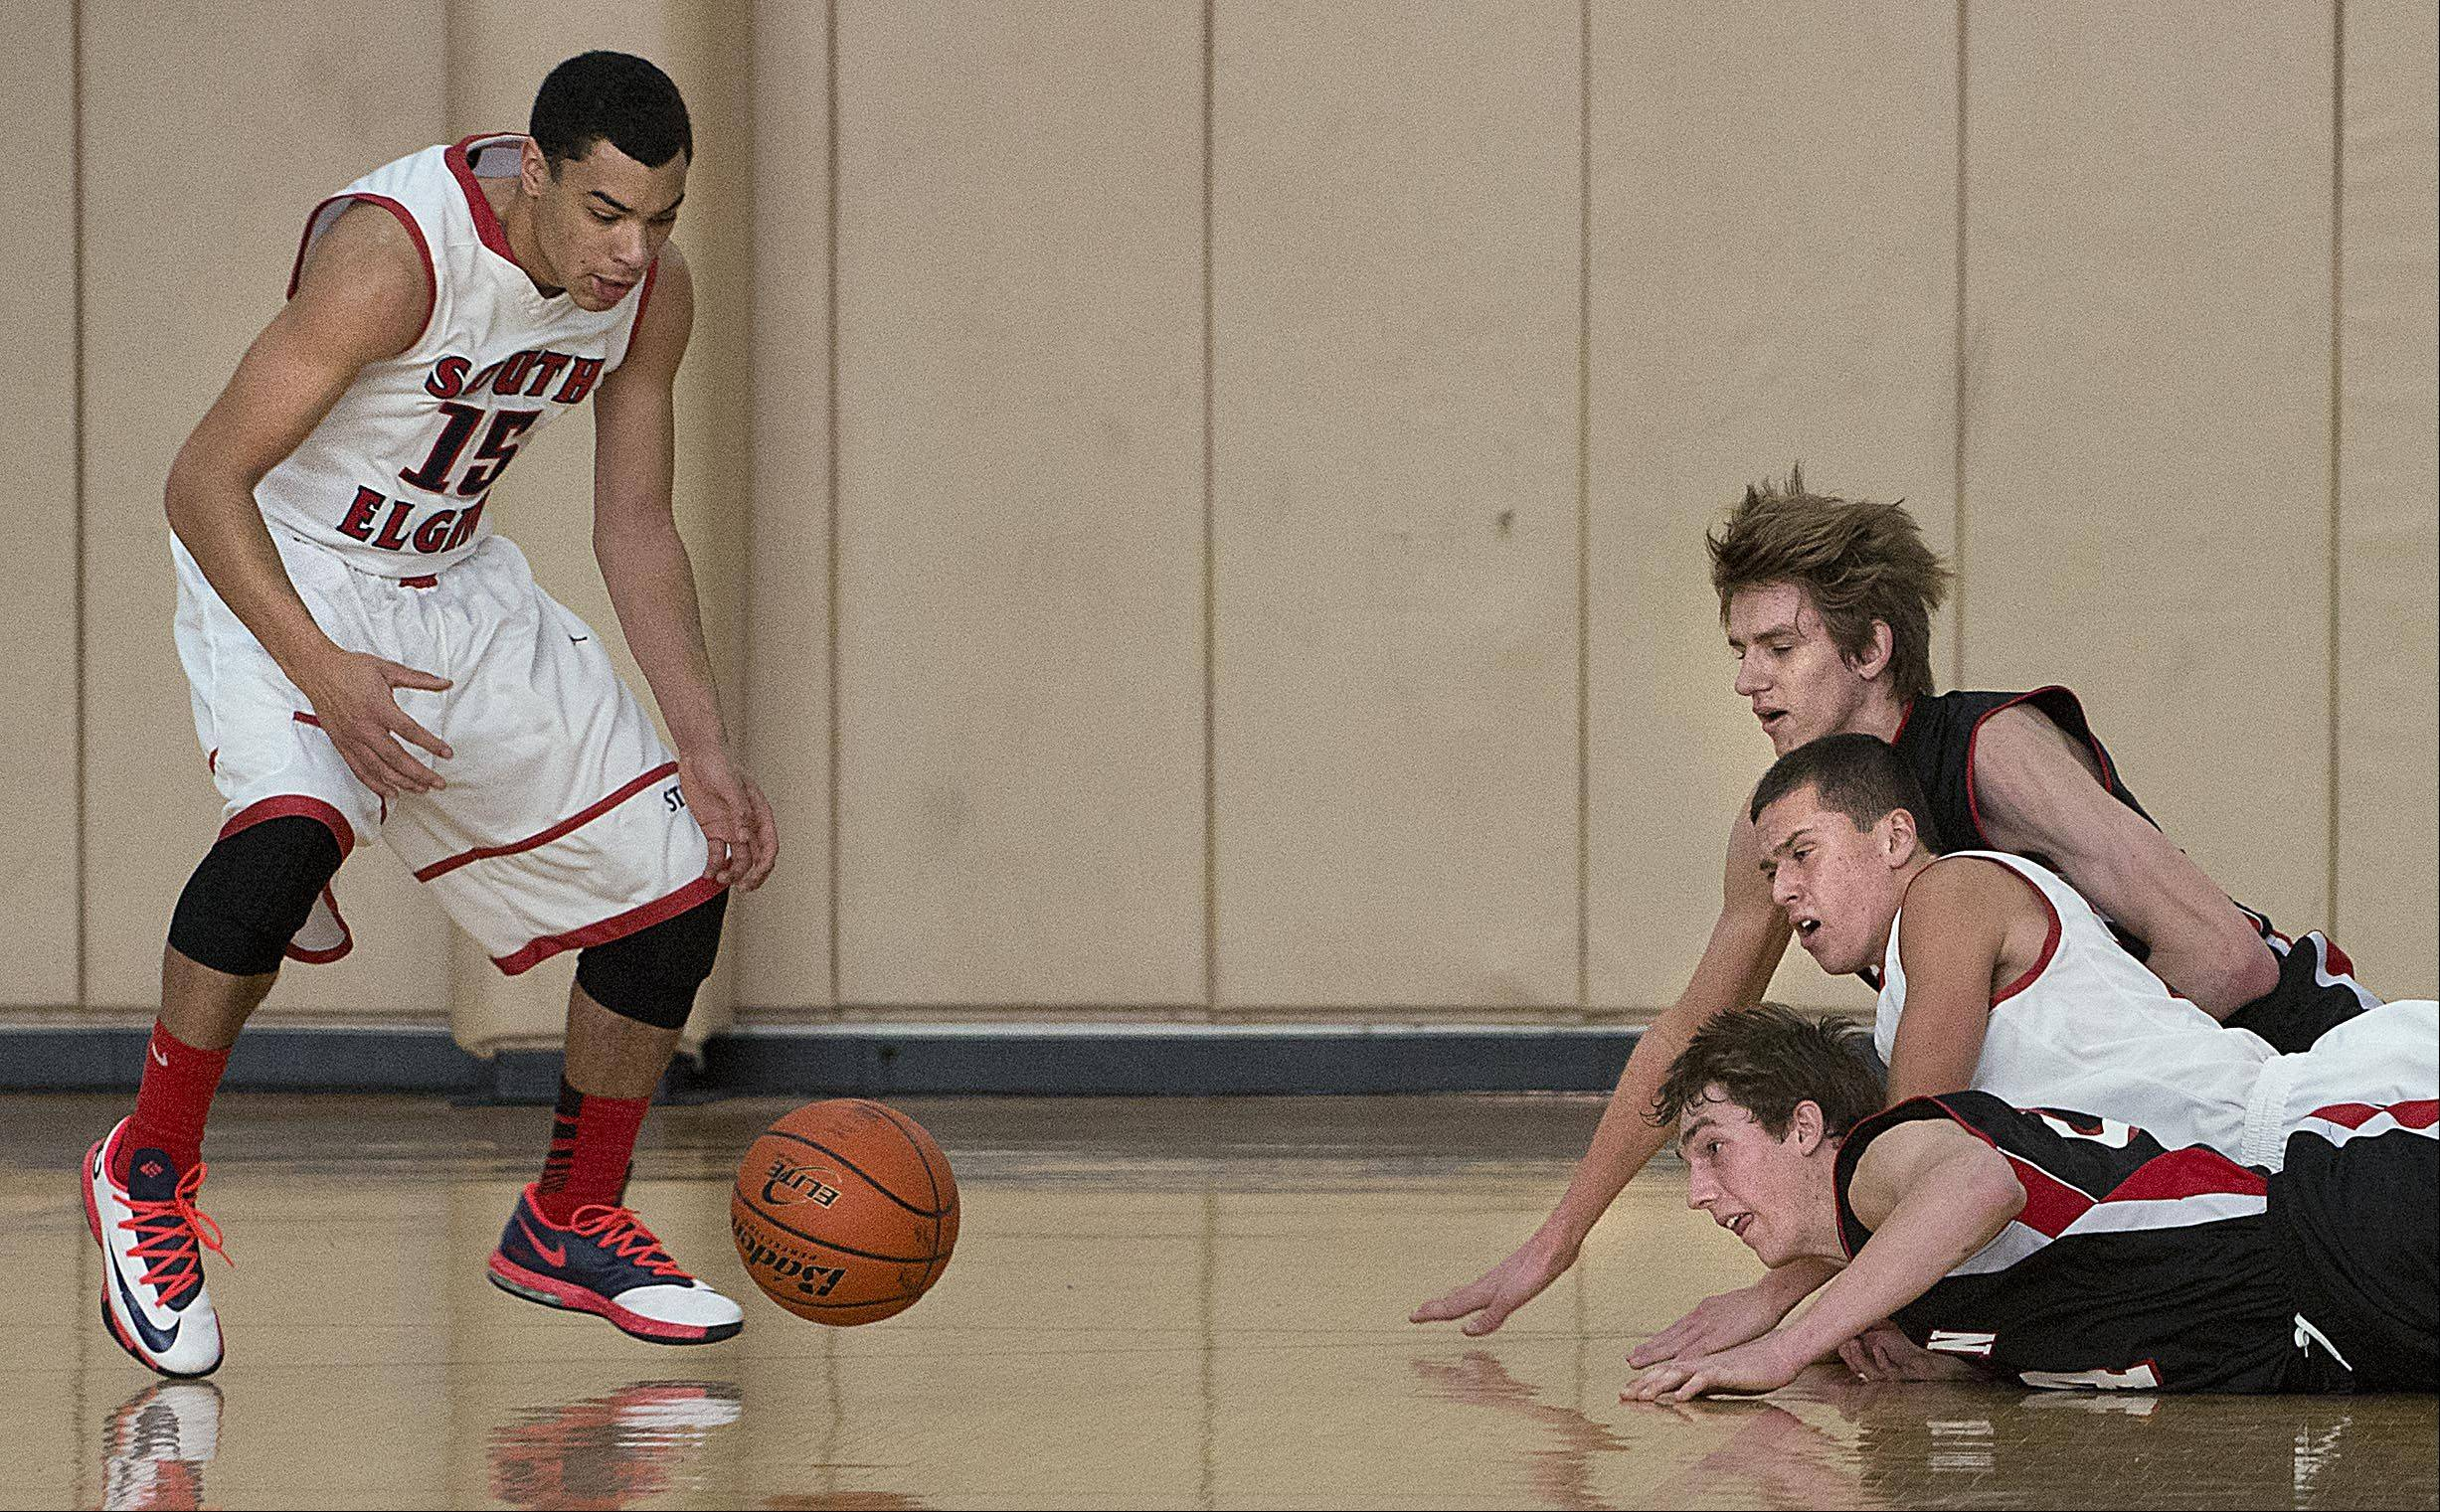 Barrington's Rapolas Ivanauskas and West McDonald and South Elgin's Matt McClure watch as South Elgin's Matthew Smith reaches for a loose ball Monday at the Hinkle Holiday Classic at Jacobs High School in Algonquin.